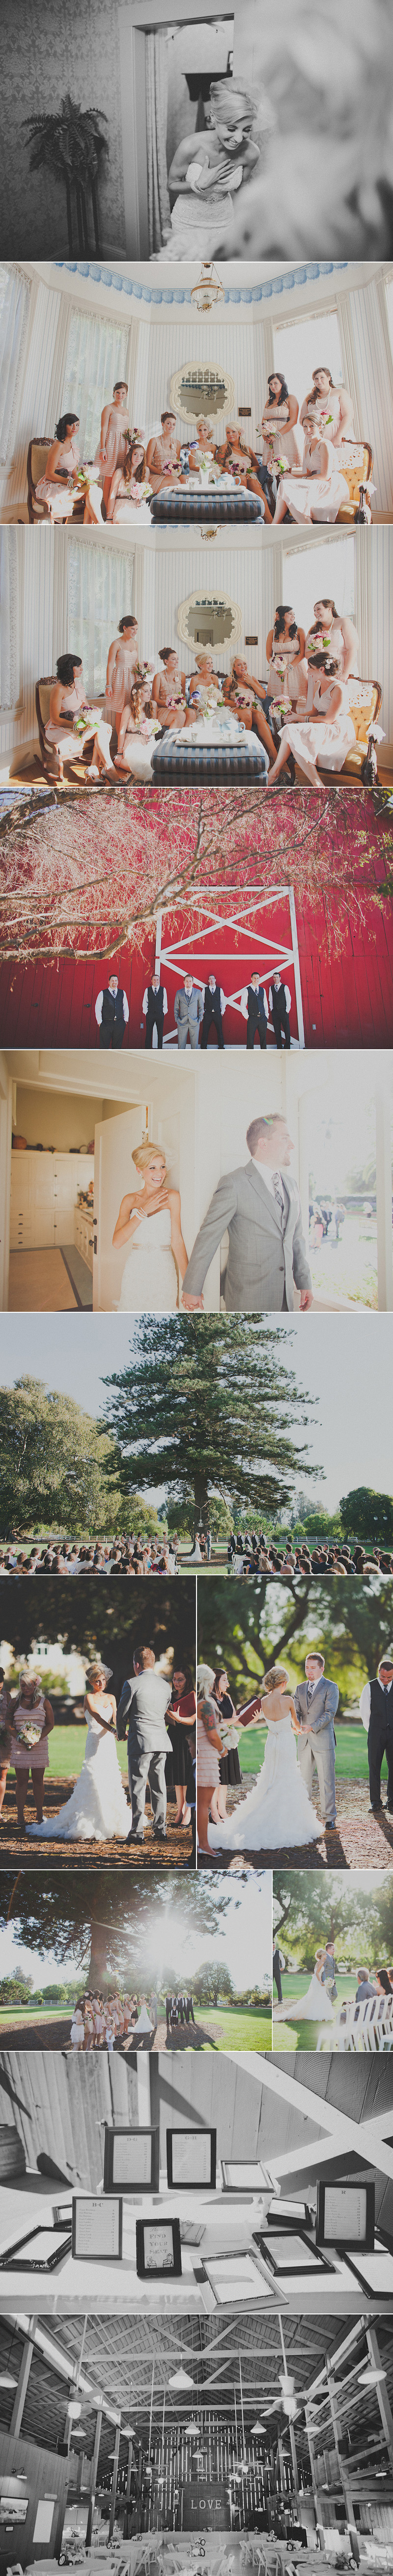 Camarillo wedding photographer, vintage wedding